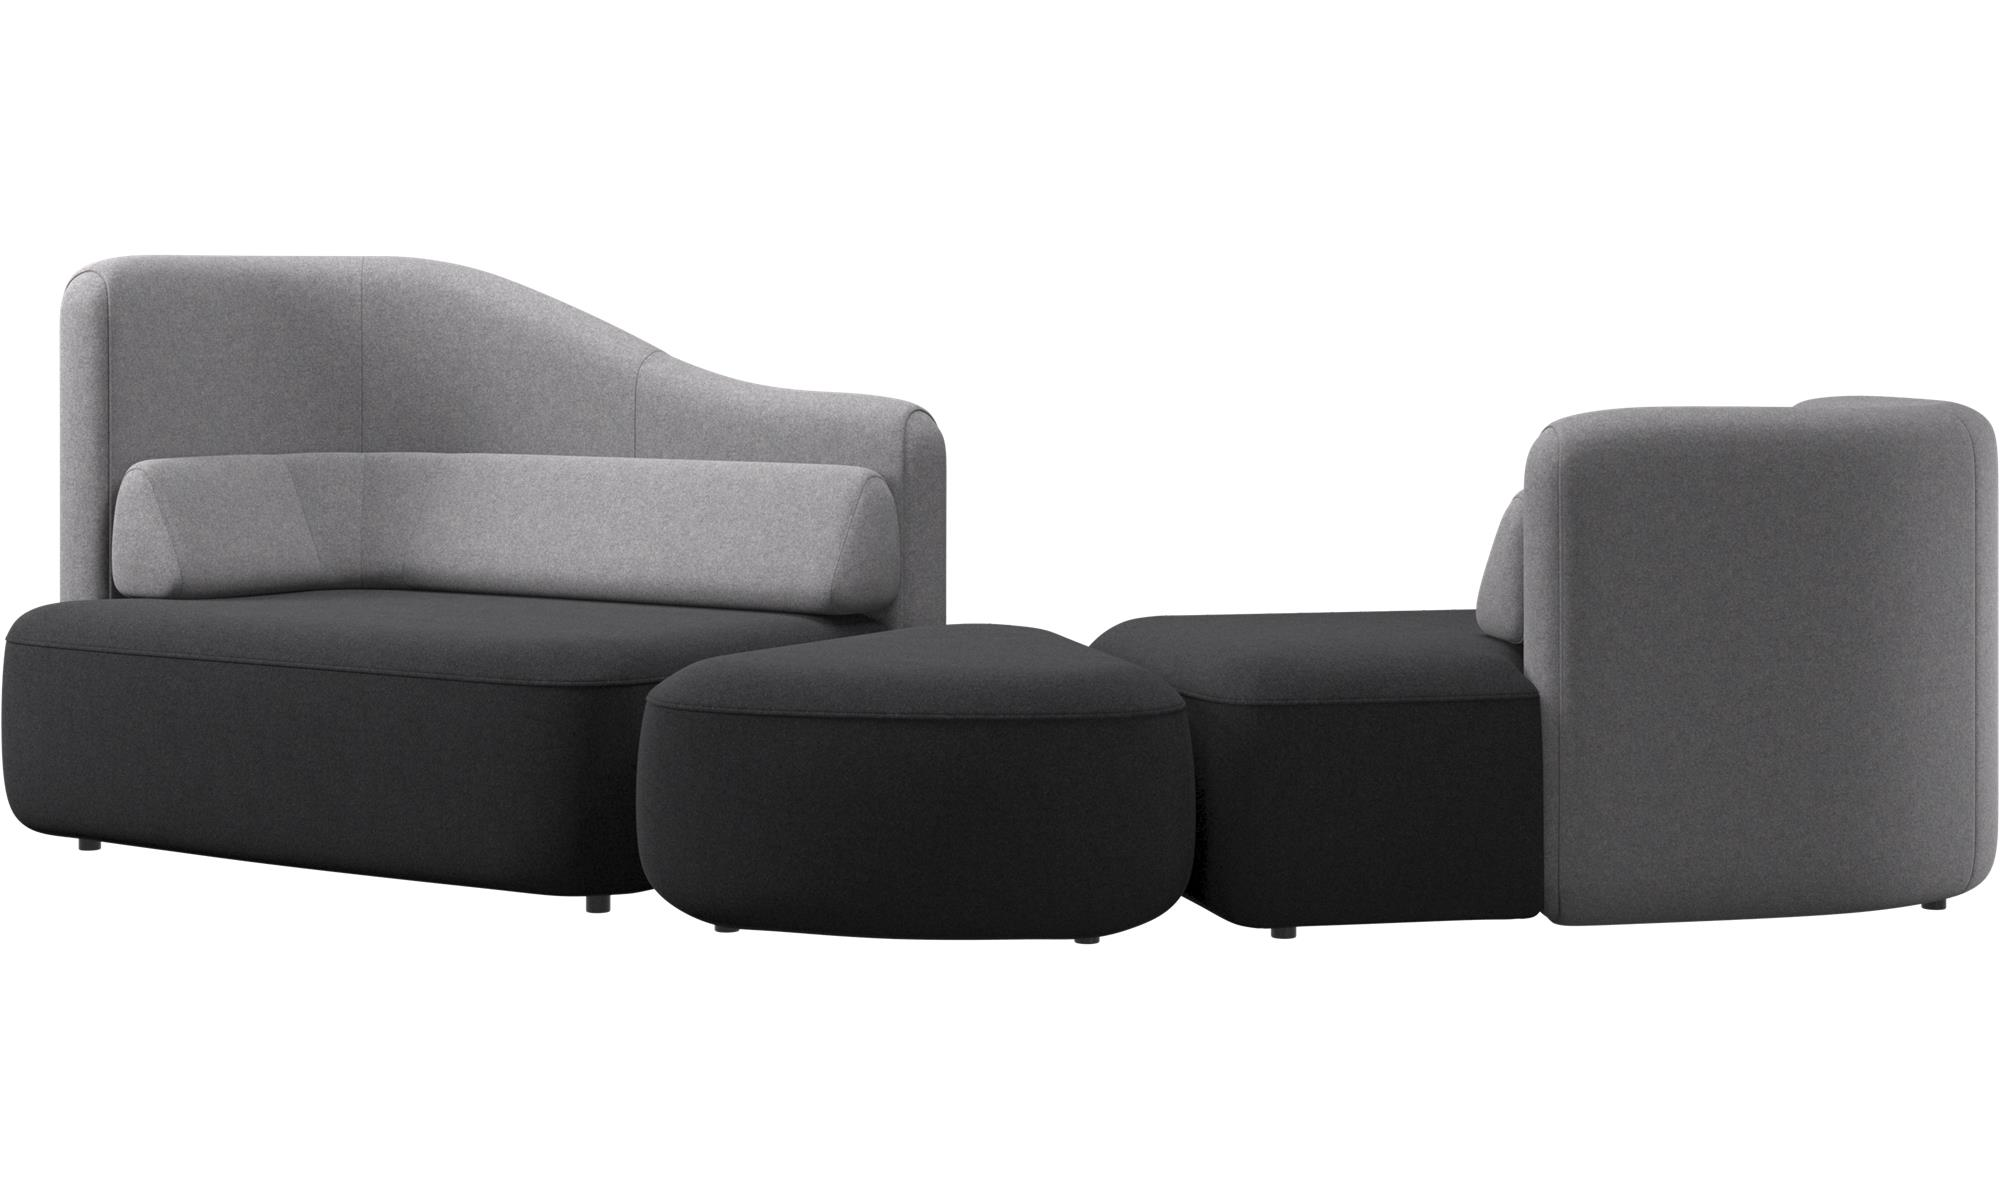 modular sofas ottawa sofa boconcept. Black Bedroom Furniture Sets. Home Design Ideas